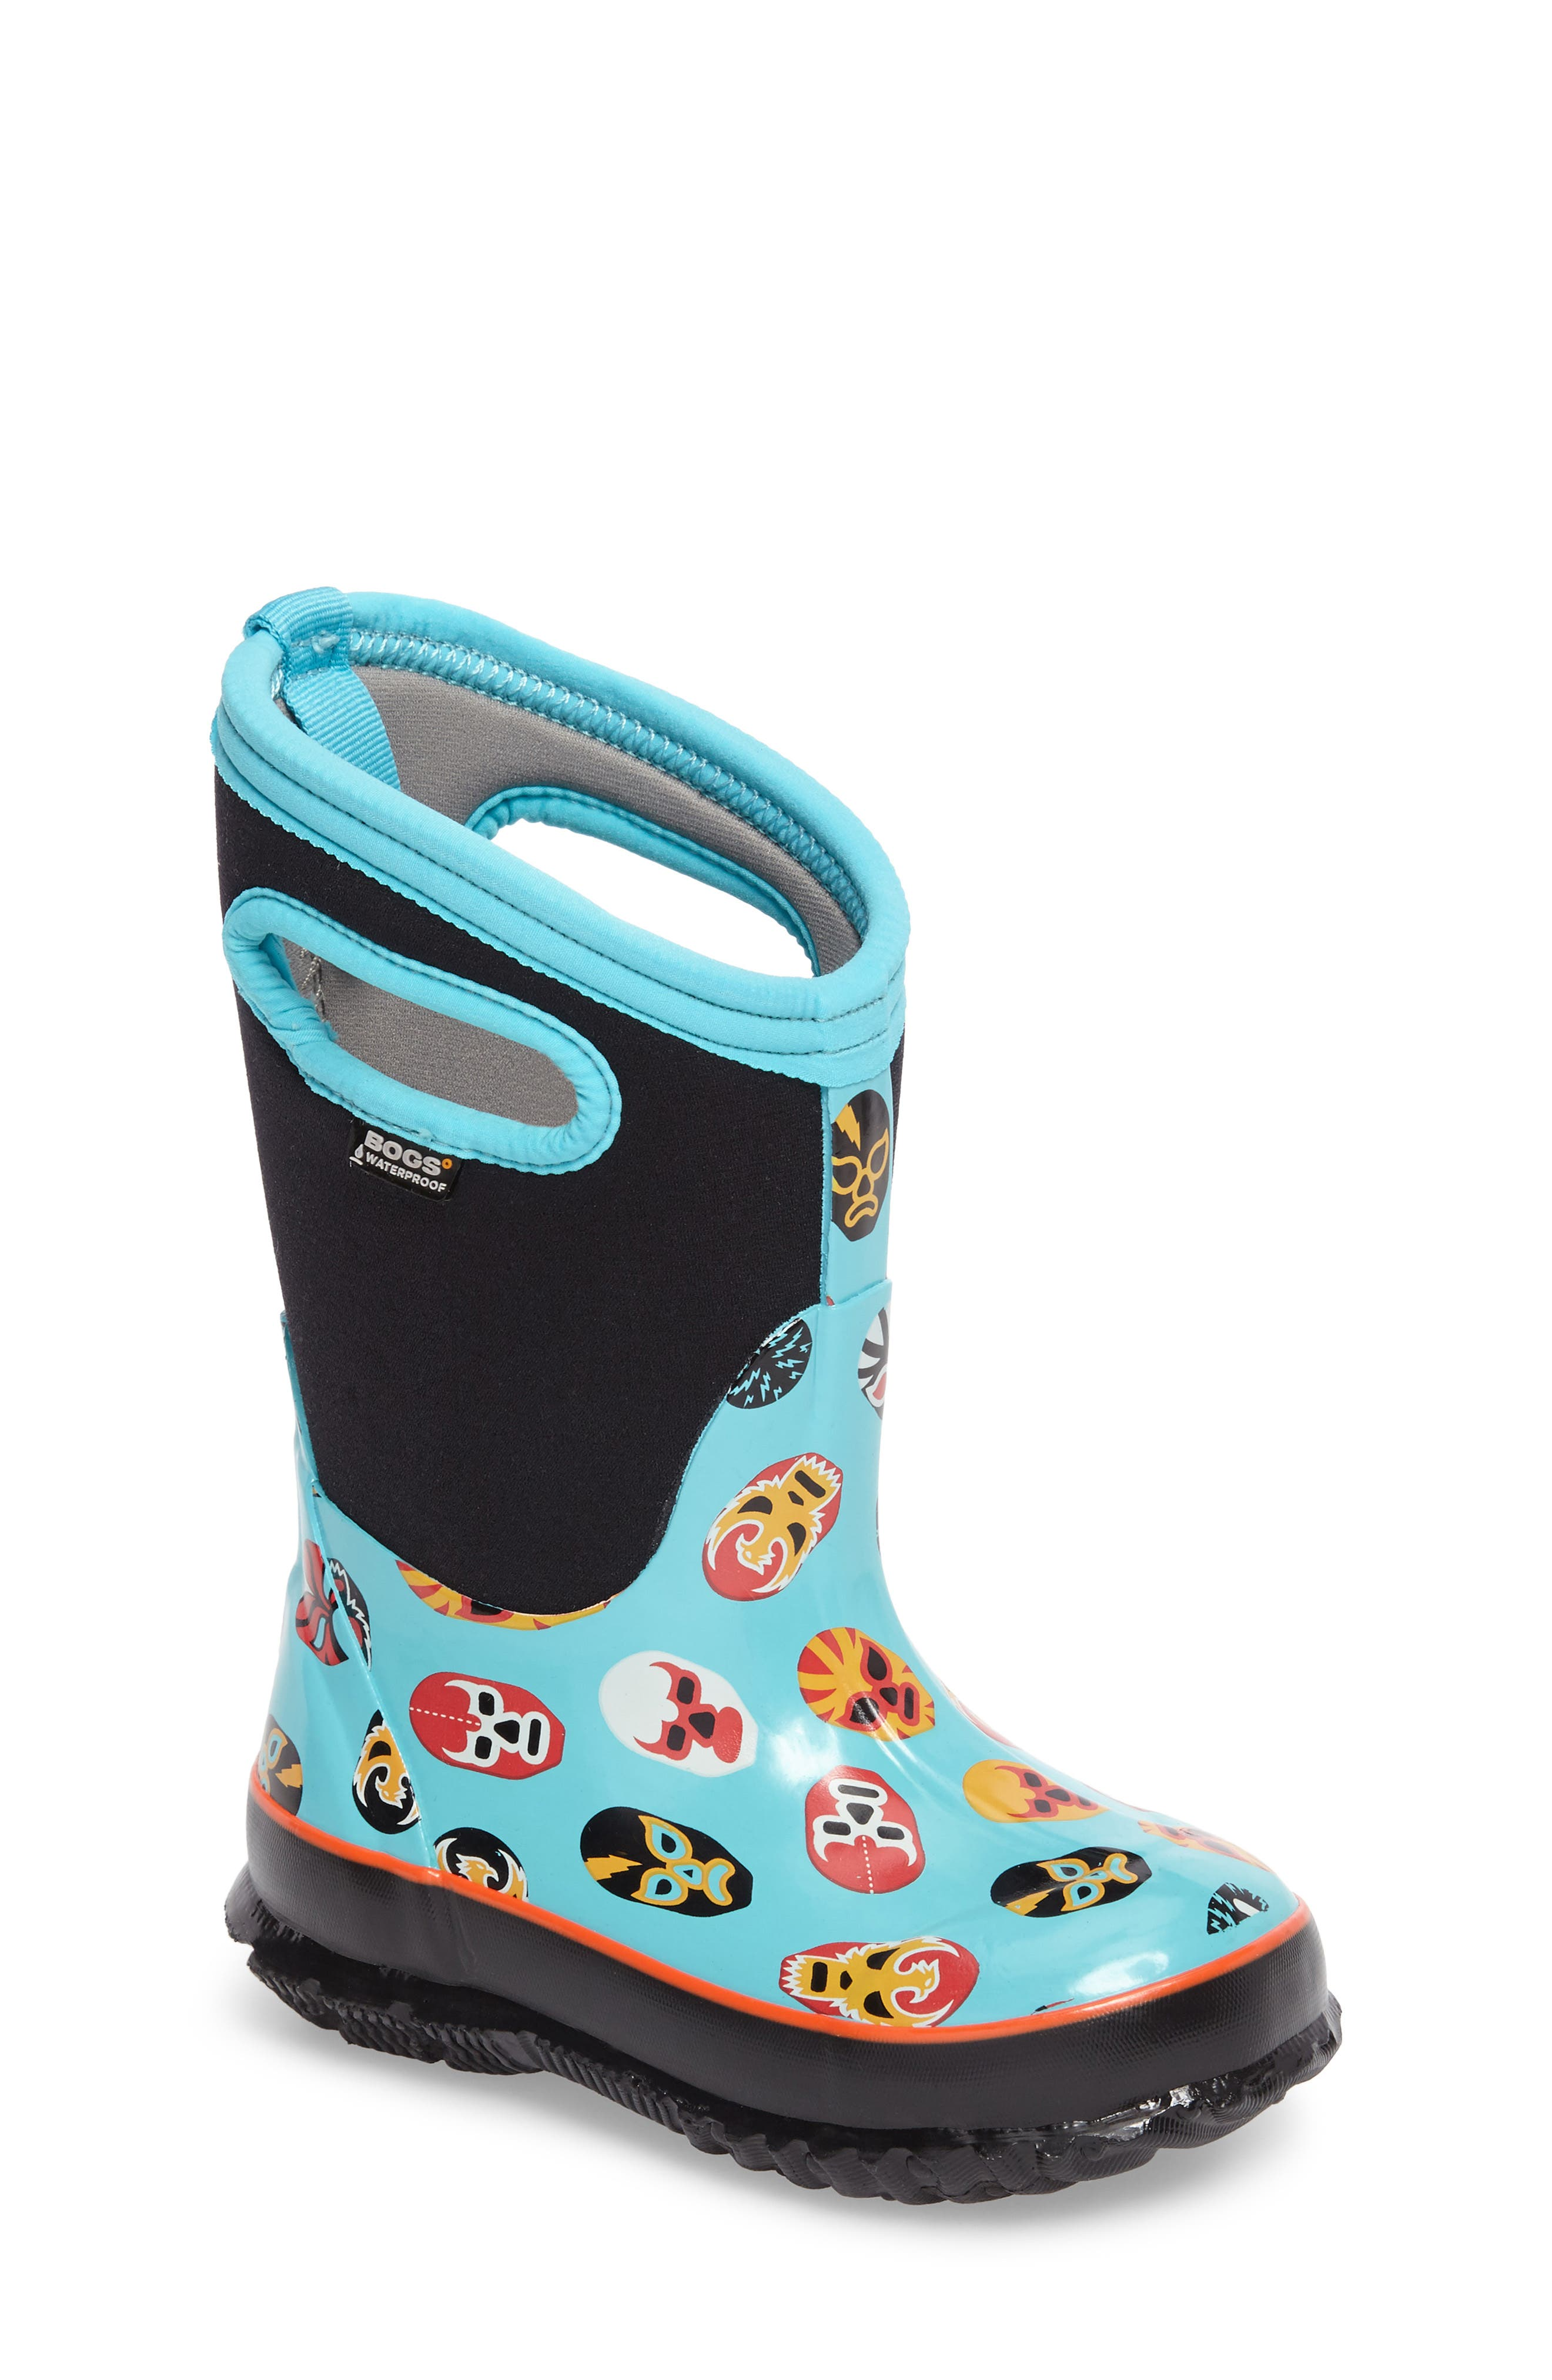 Main Image - Bogs Classic Mask Insulated Waterproof Boot (Toddler, Little Kid & Big Kid)